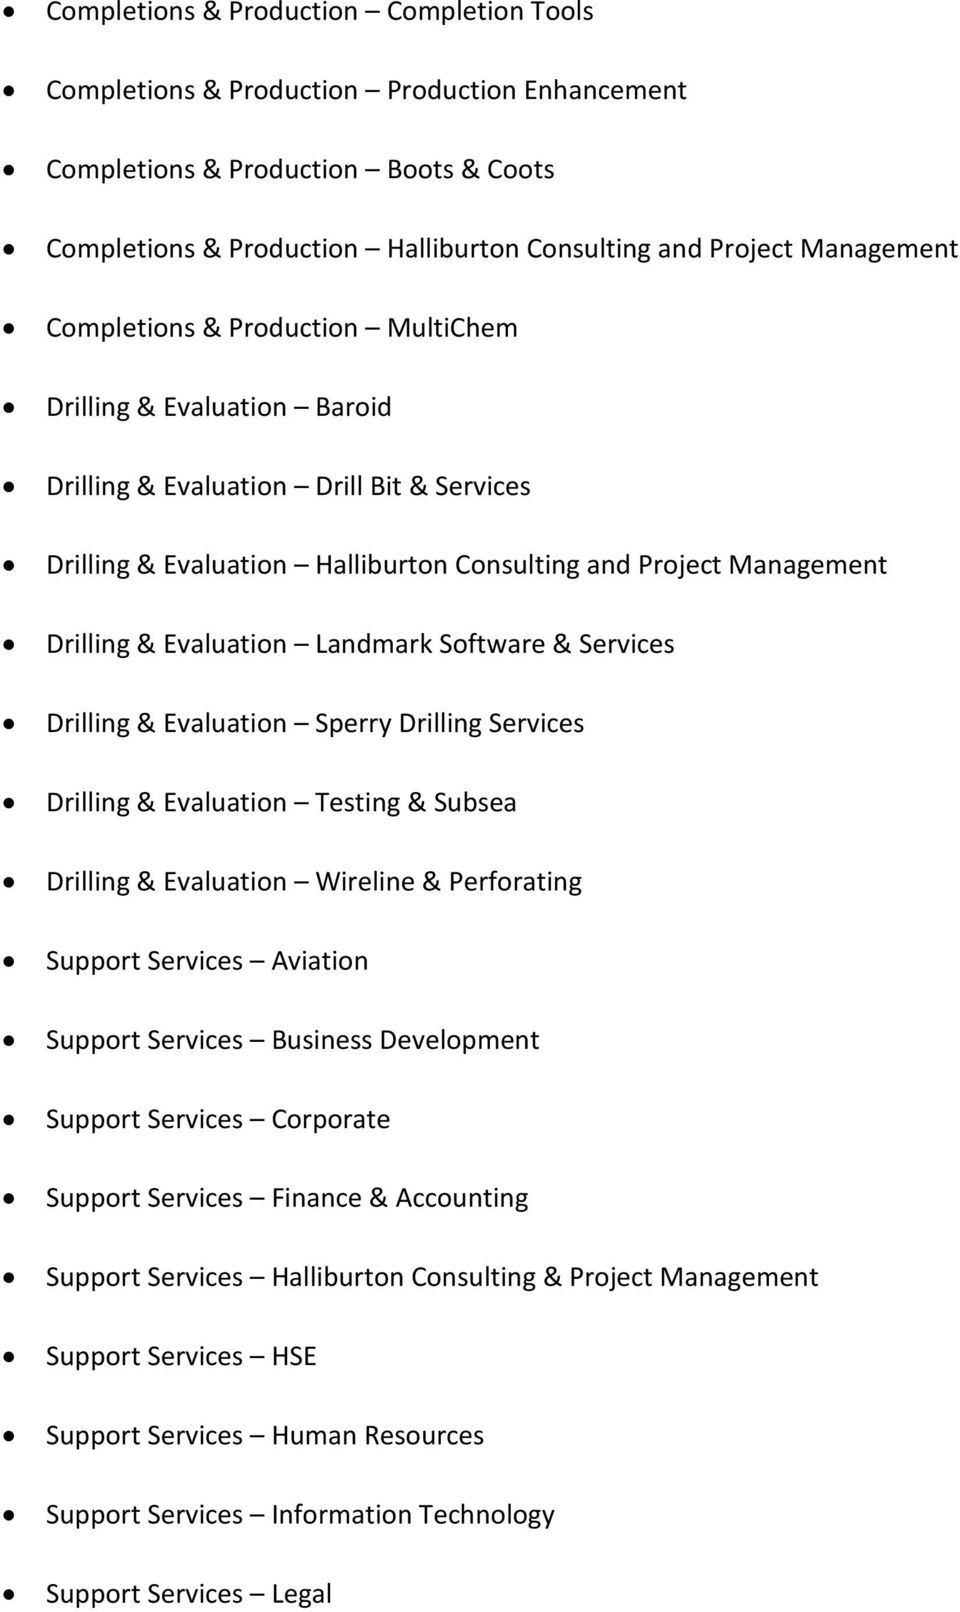 Landmark Software & Services Drilling & Evaluation Sperry Drilling Services Drilling & Evaluation Testing & Subsea Drilling & Evaluation Wireline & Perforating Support Services Aviation Support